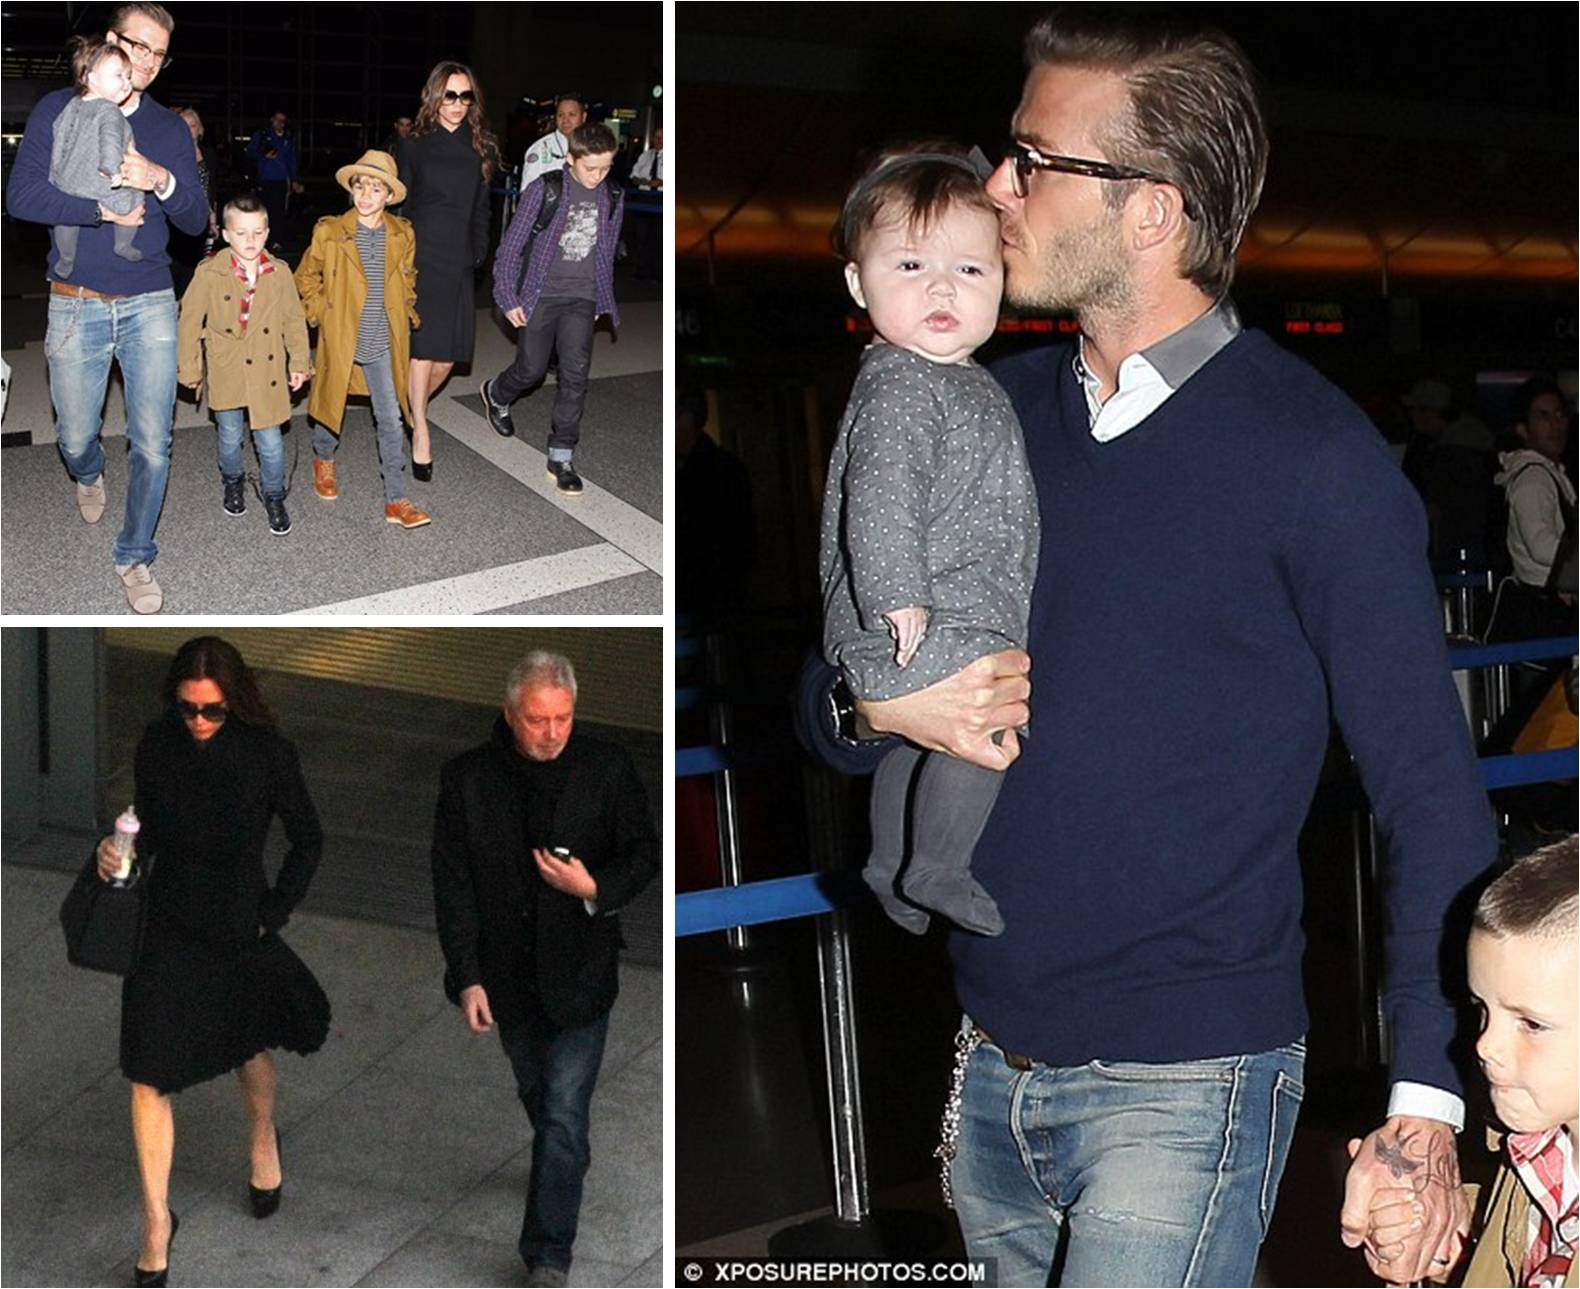 http://3.bp.blogspot.com/-kSEqqVyu9sM/TvBHnzK5c4I/AAAAAAAAIOU/VjbiR0SQQ6M/s1600/Victoria+Beckham+and+Family+Travel+Home+for+Christmas.jpg